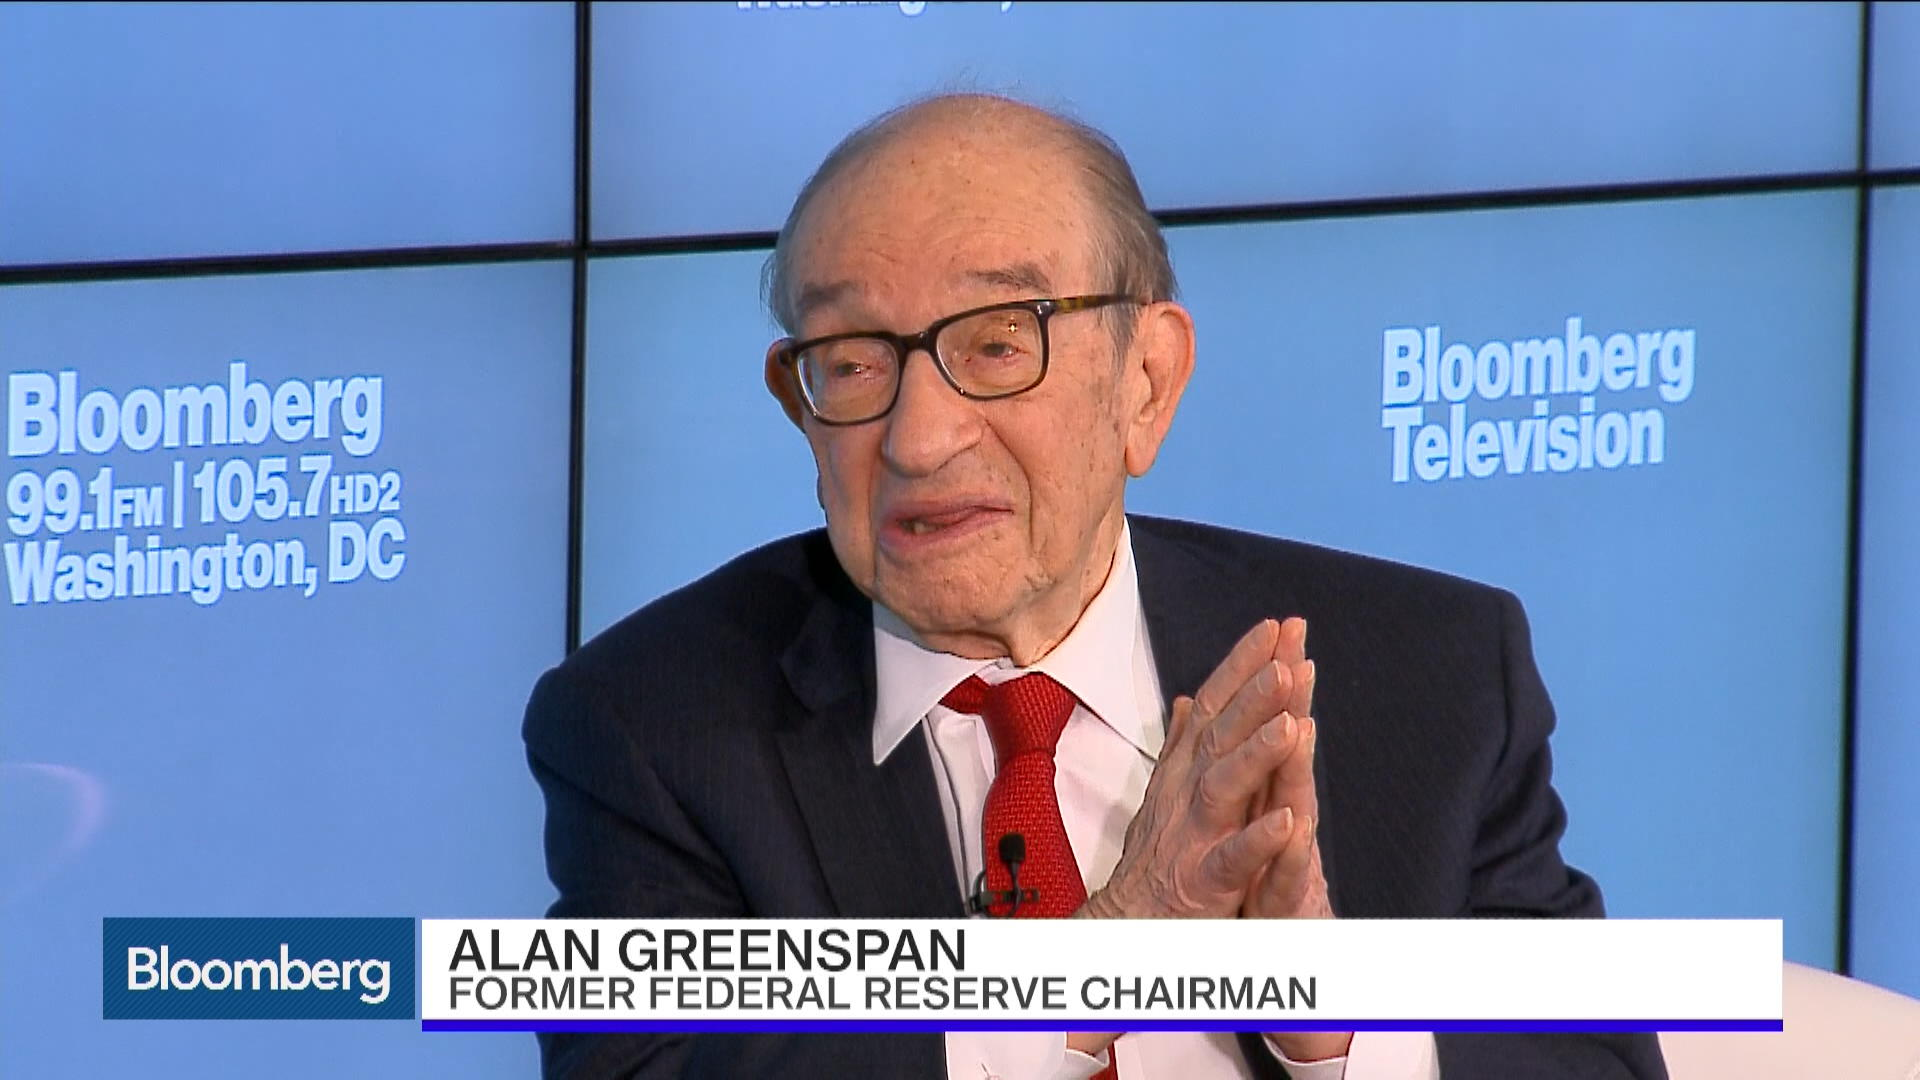 an introduction to the work by alan greenspan a chairman of the fed